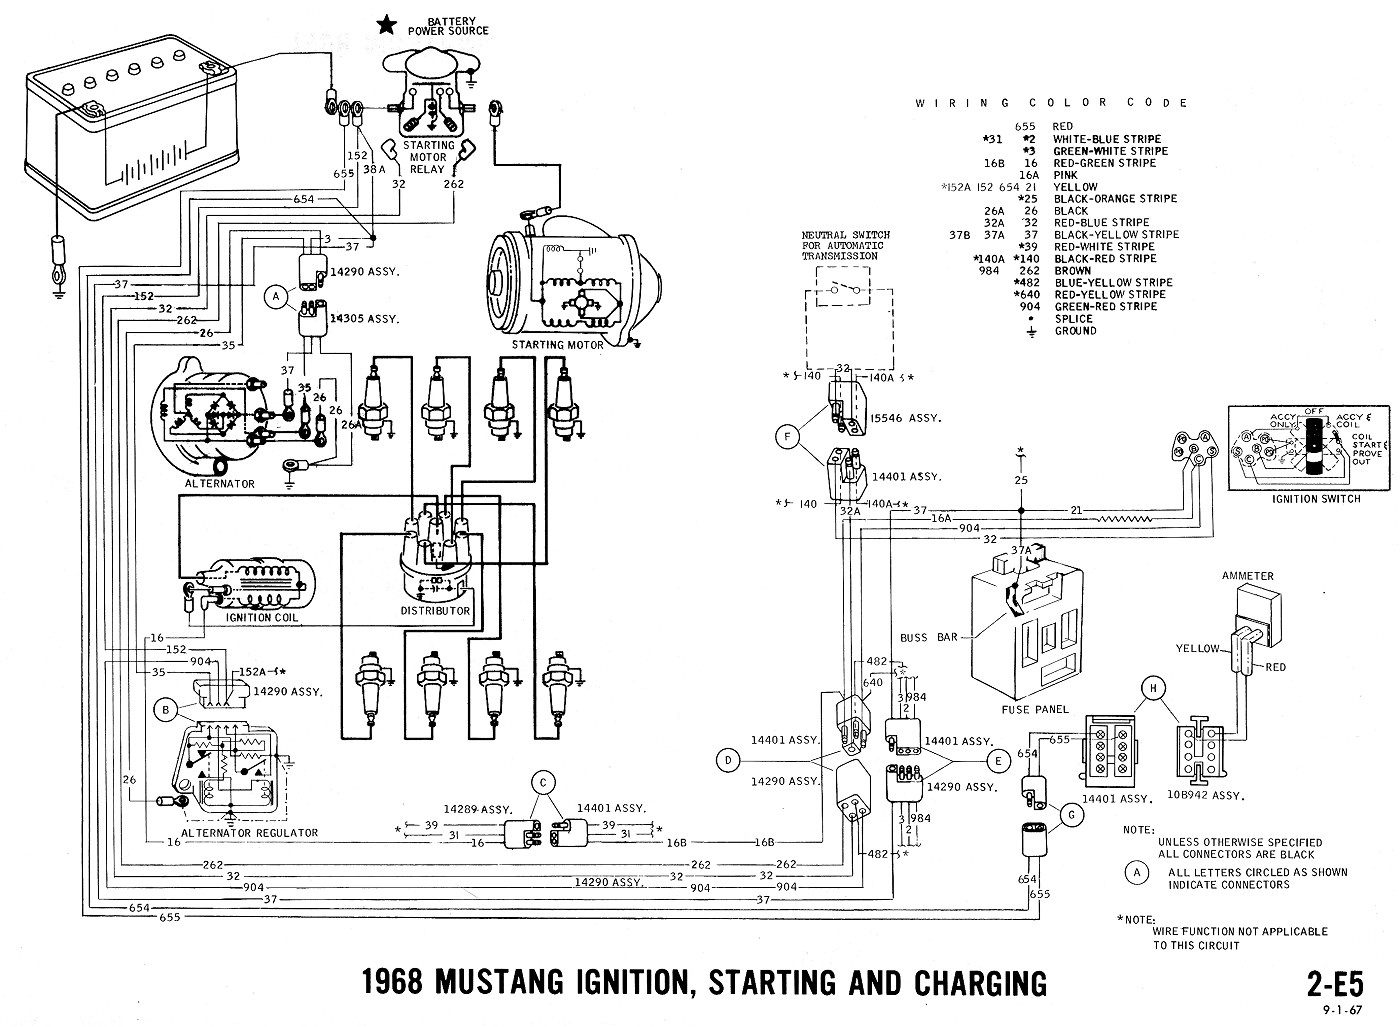 1968 Mustang Wiring Diagrams Evolving Software Mustang Vacuum Line Diagram  67 Mustang Wiring Diagram Charge Light